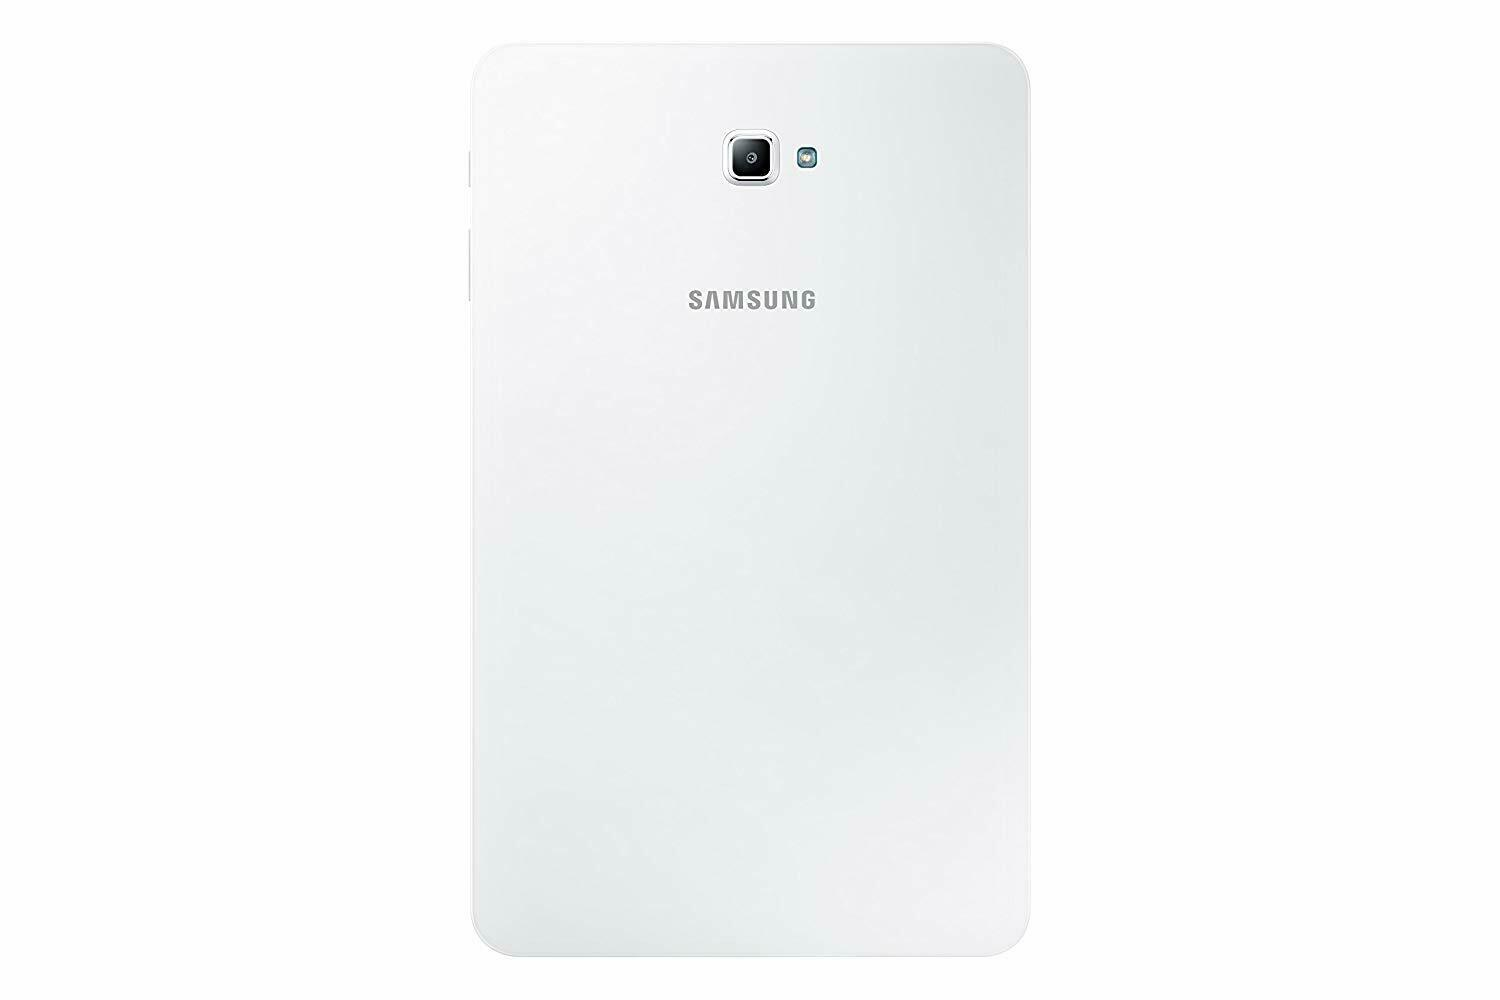 Samsung galaxy sm-t580nzwexef tab a tablette tactile 10